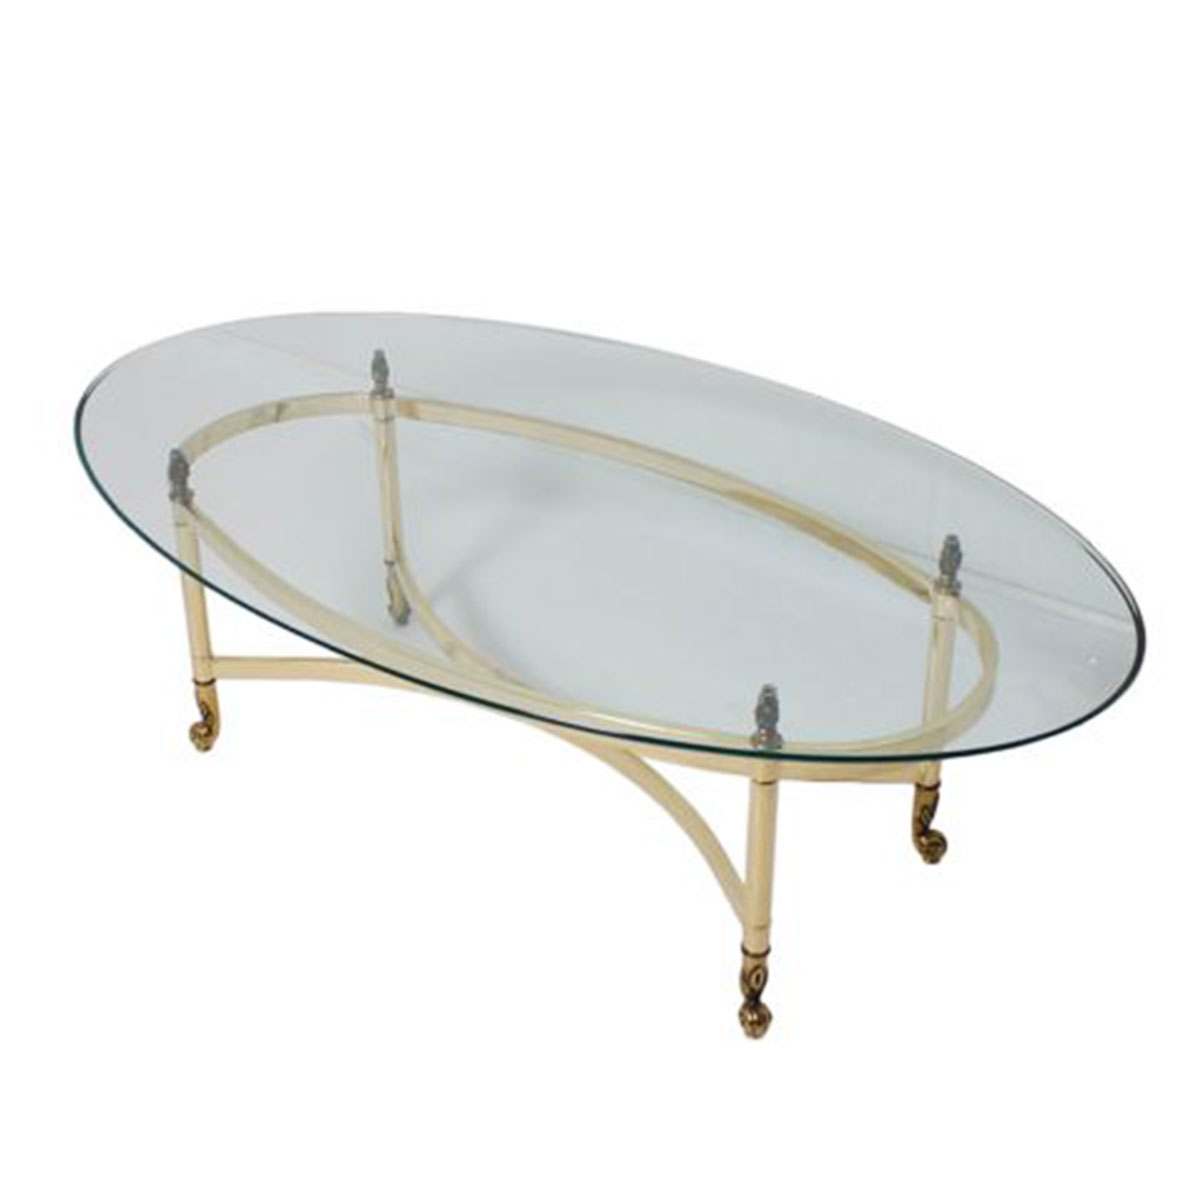 LaBarge Oval Glass & Brass Glamorous Cocktail Table